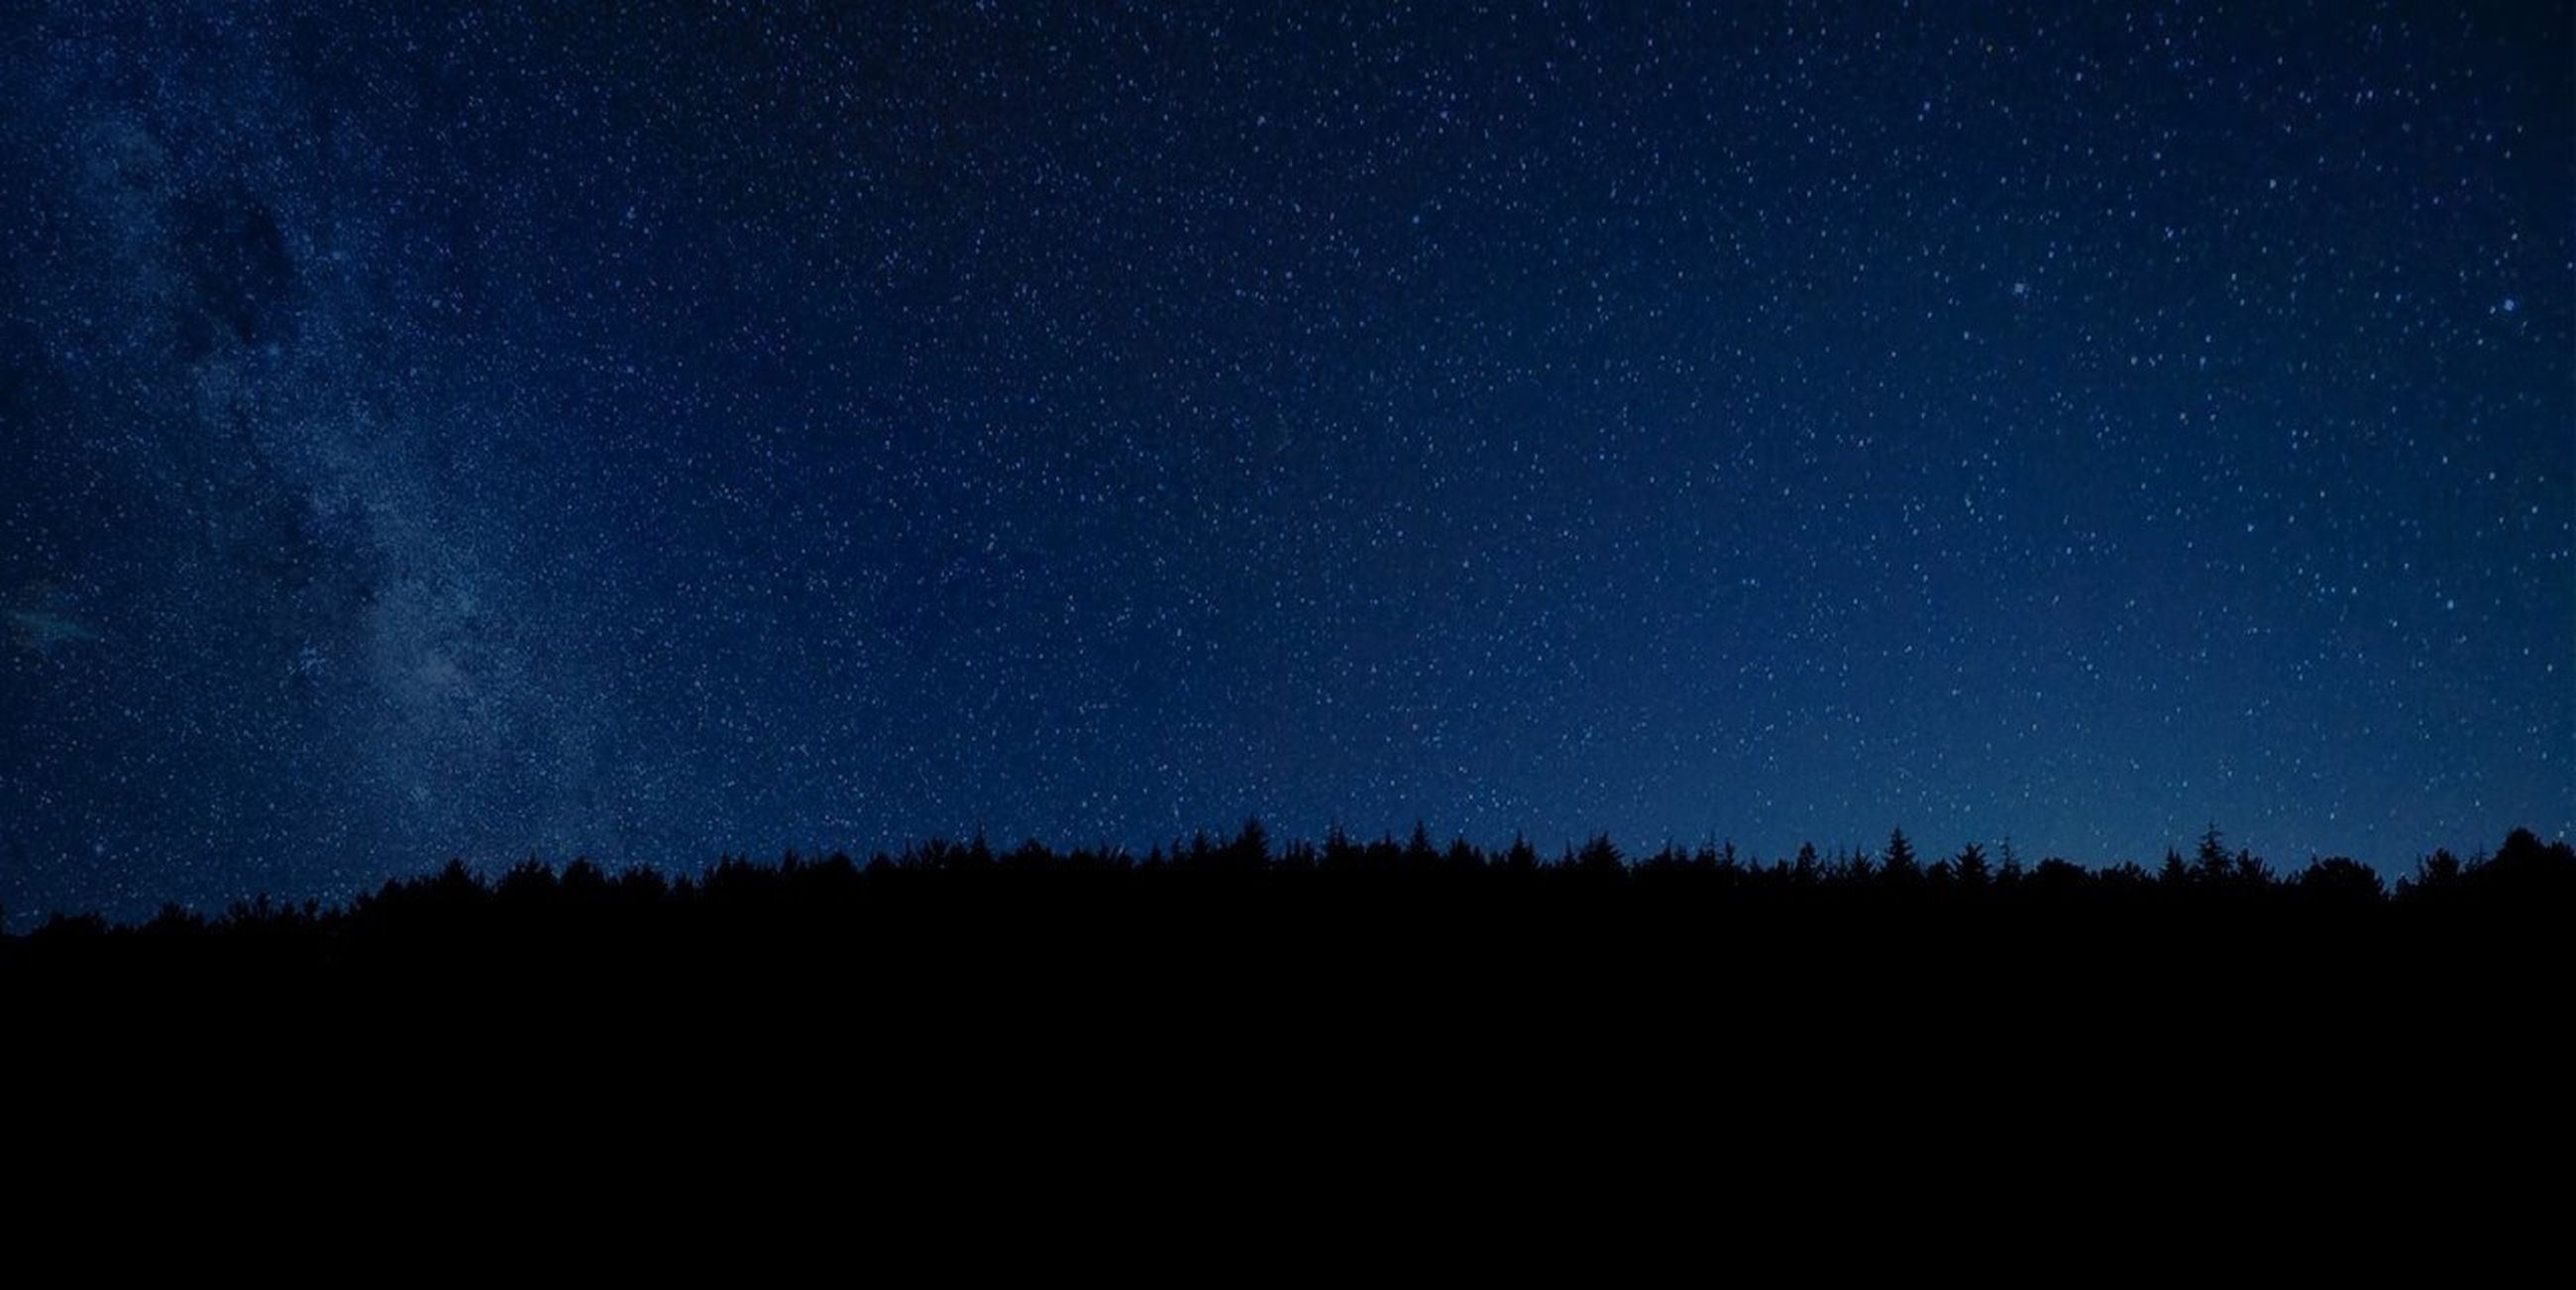 night, star - space, star field, scenics, tranquil scene, beauty in nature, astronomy, tranquility, galaxy, tree, sky, star, space, nature, silhouette, dark, idyllic, infinity, low angle view, milky way